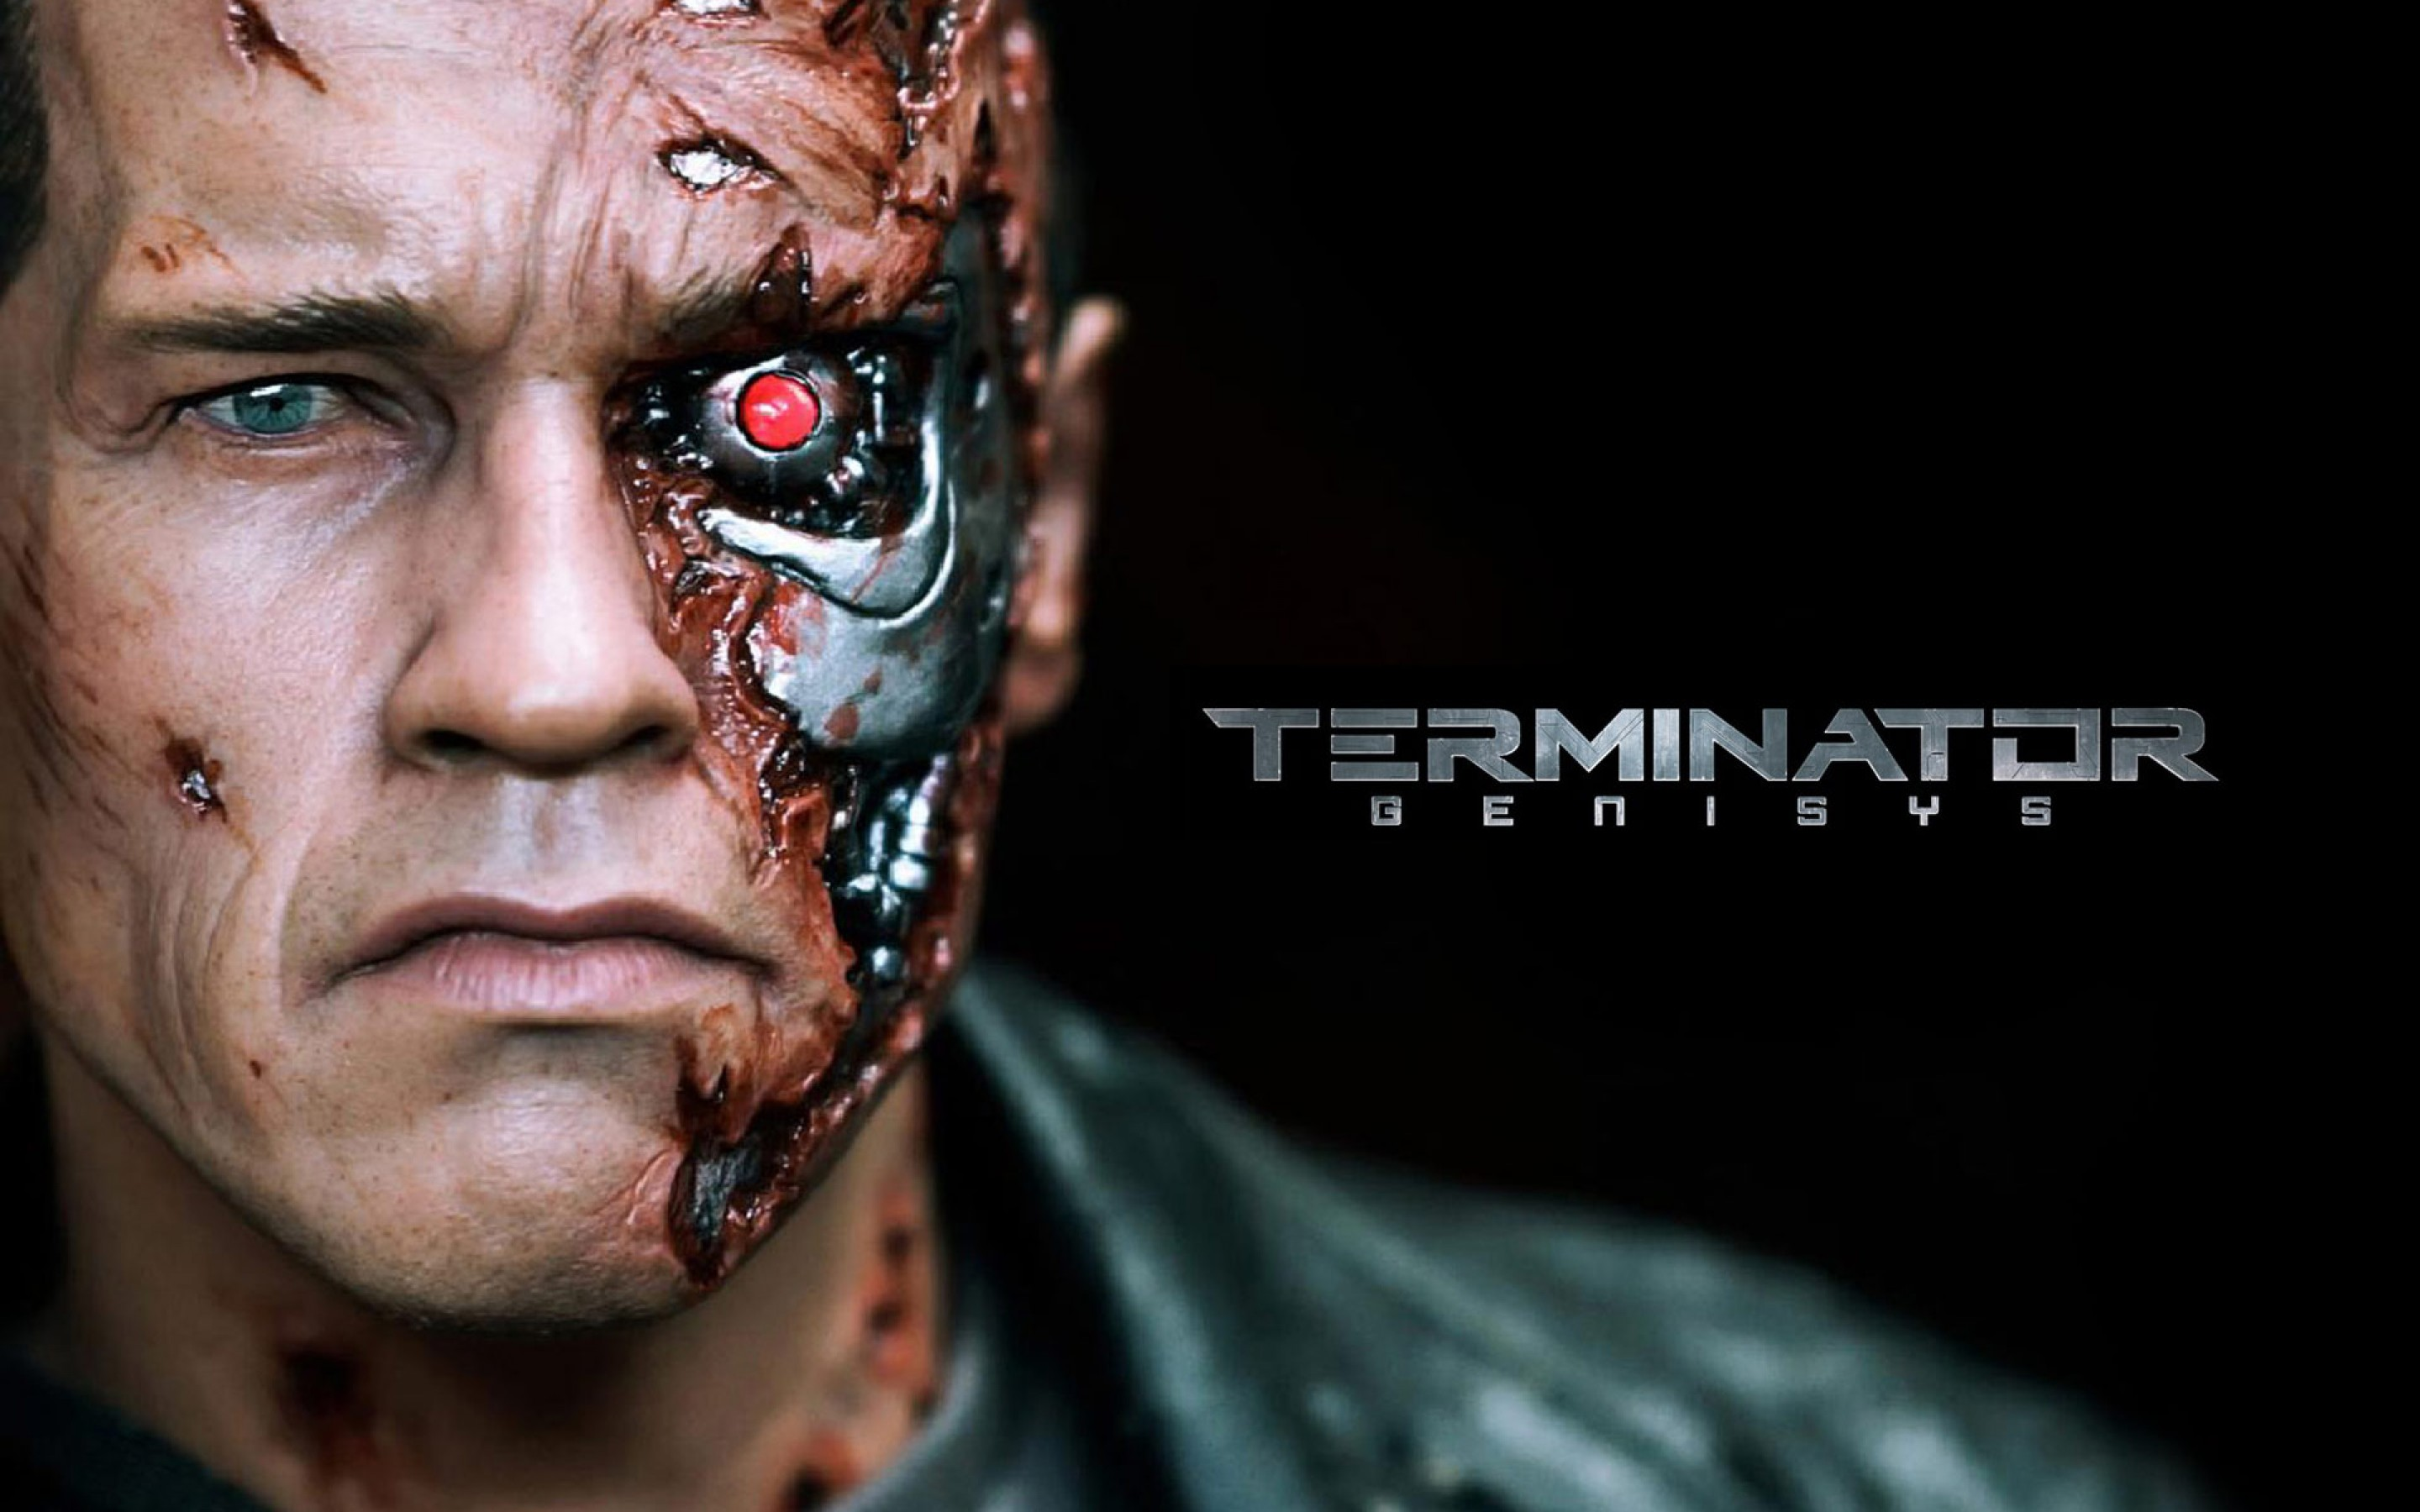 HQ Terminator Wallpapers | File 444.87Kb